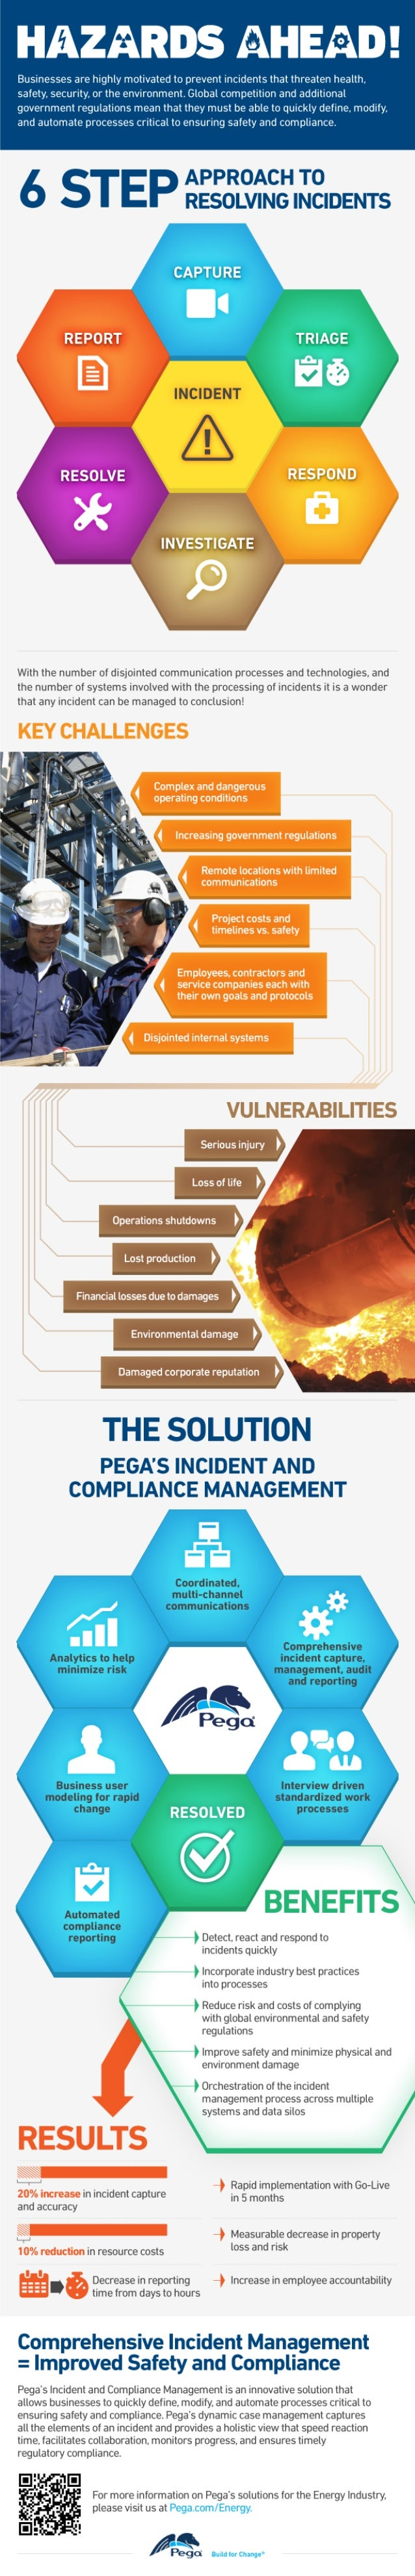 6 Step Approach to Resolving Incidents Infographic